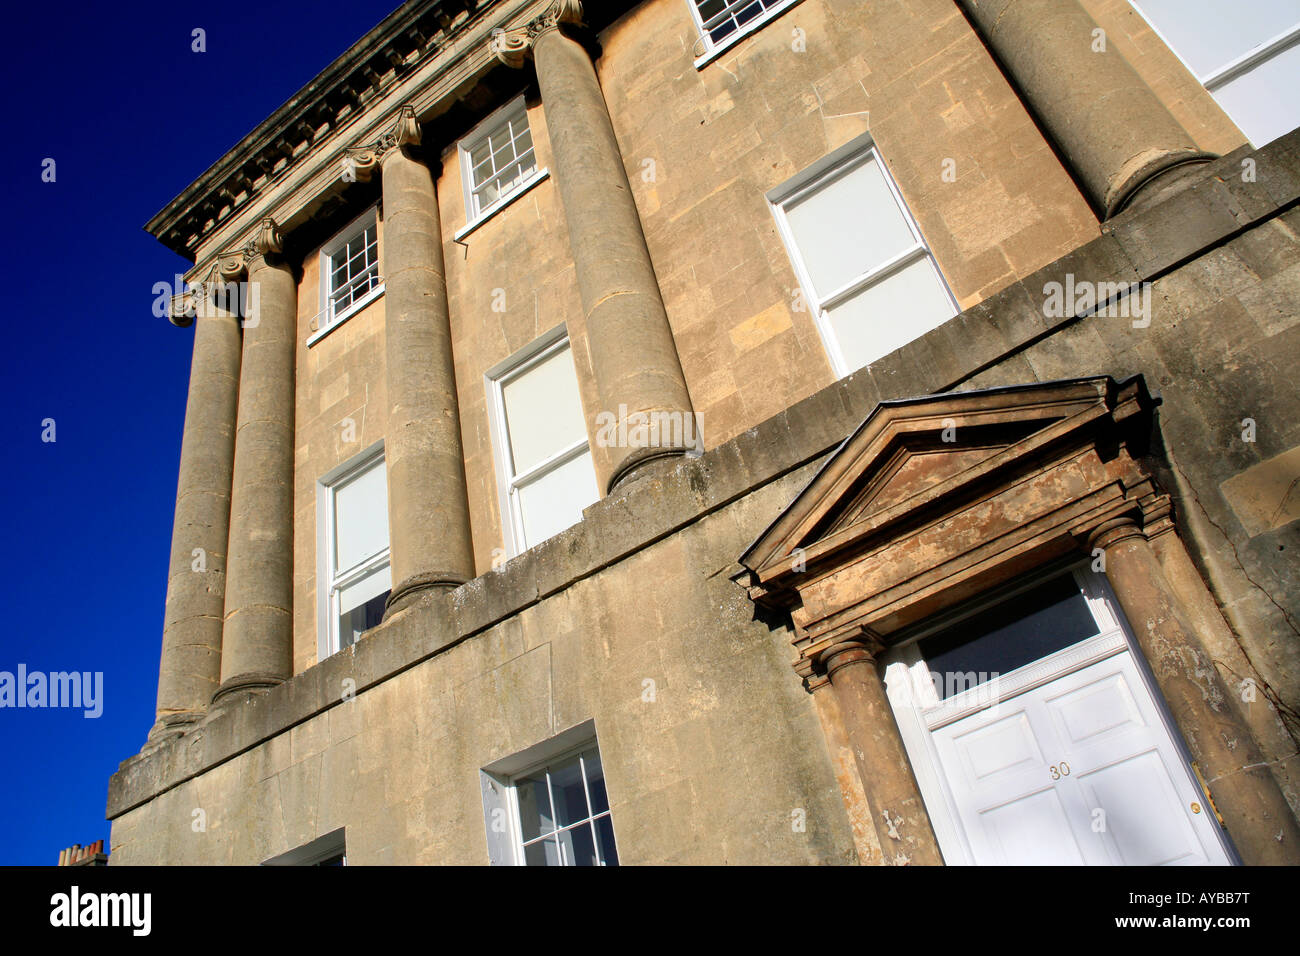 Western end of the world famous Royal Crescent designed by John Wood the Younger, in the city of Bath, Somerset, - Stock Image